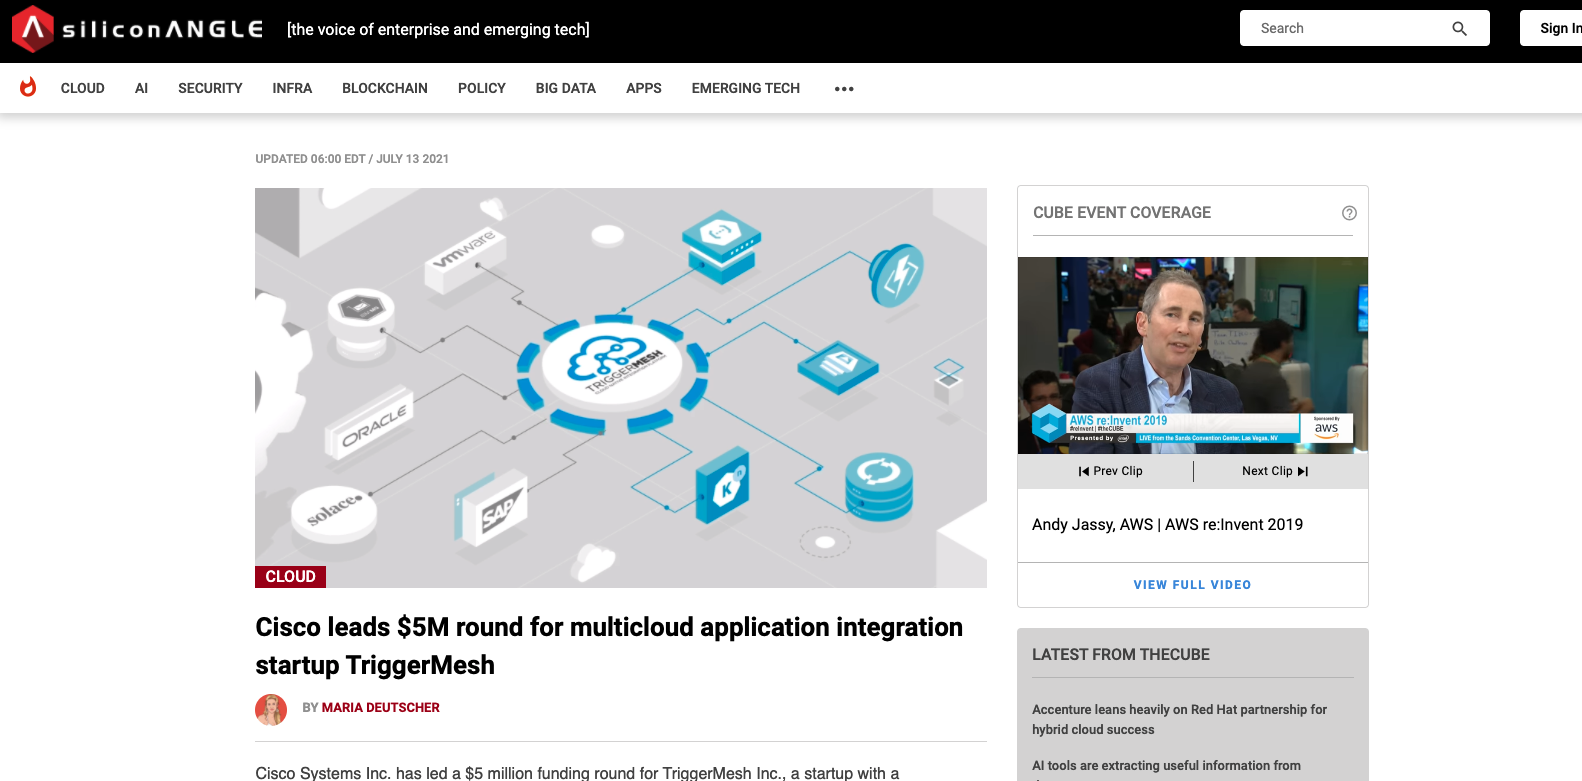 Sililcon Angle - Cisco leads $5M round for multicloud application integration startup TriggerMesh